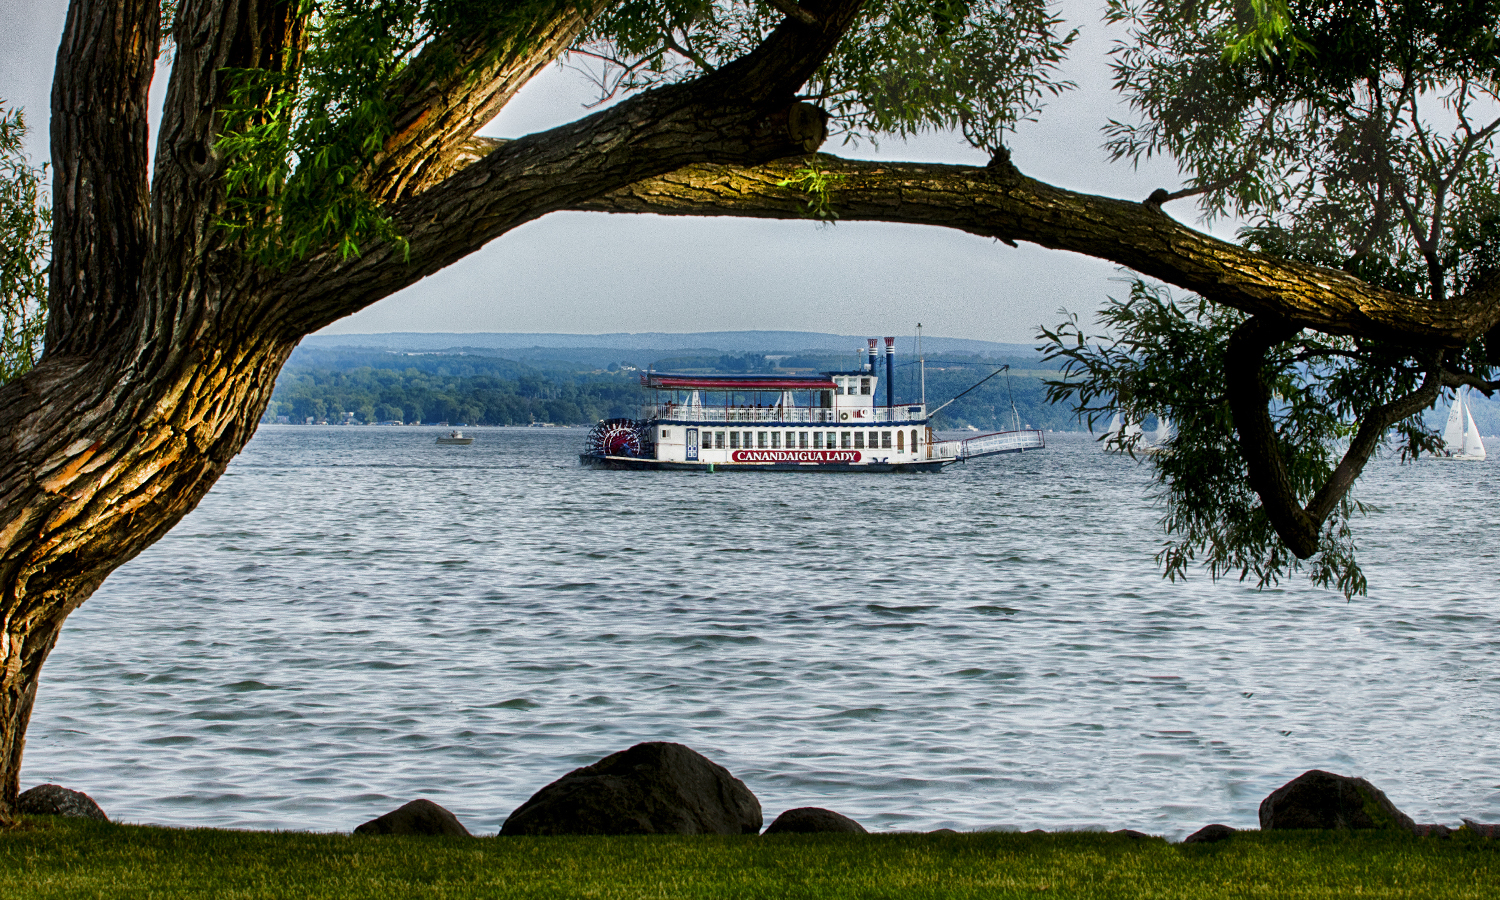 The Canandaigua Lady steamboat cruises across Canandaigua Lake.